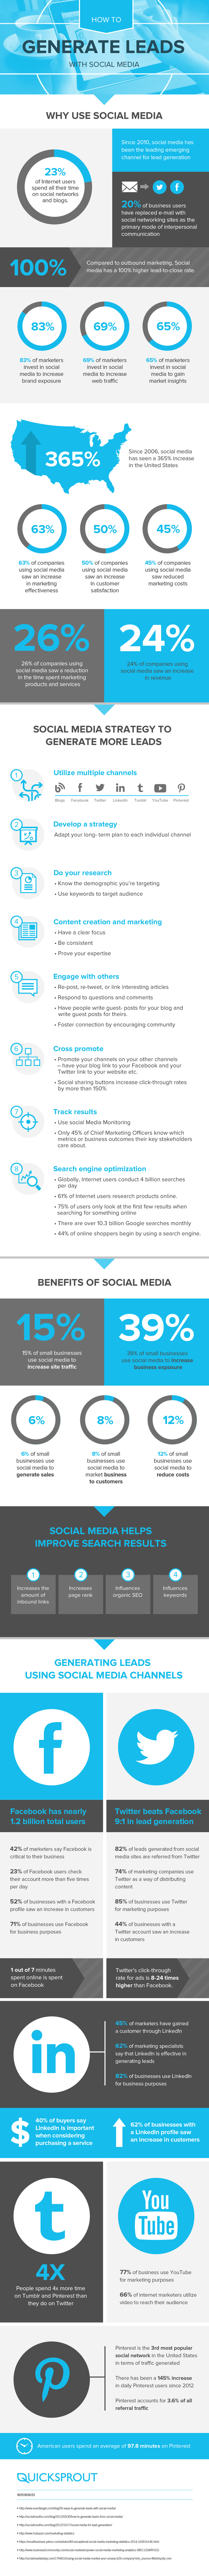 Get?<-more-leads-with-social-media-infographic